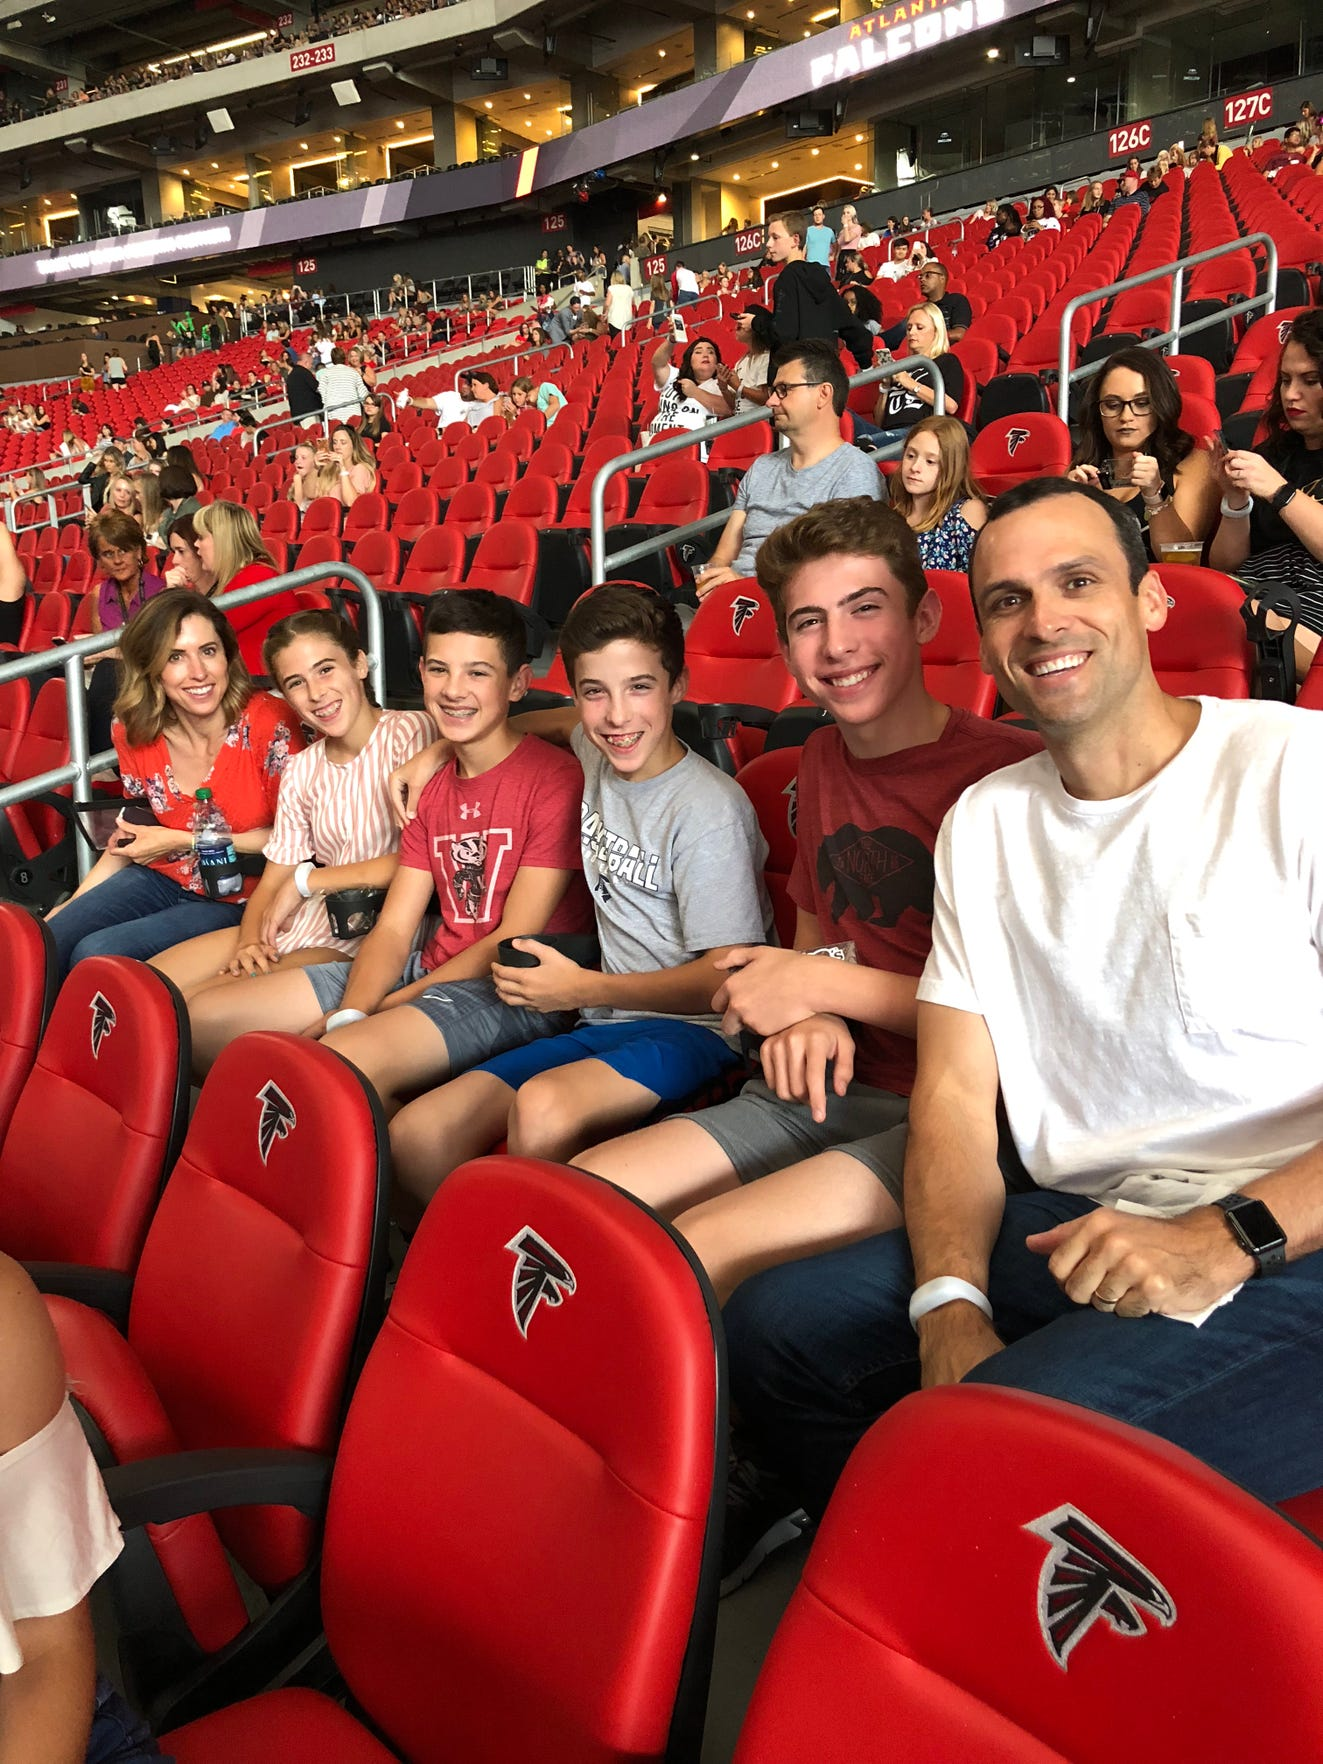 Former Pius XI standout Mike Kelley (far right) and Kelly (Auger) Kelley (far left) are seated with their children, from left to right, Shae (12), Sean (13), Ty (13) and Mike (14).